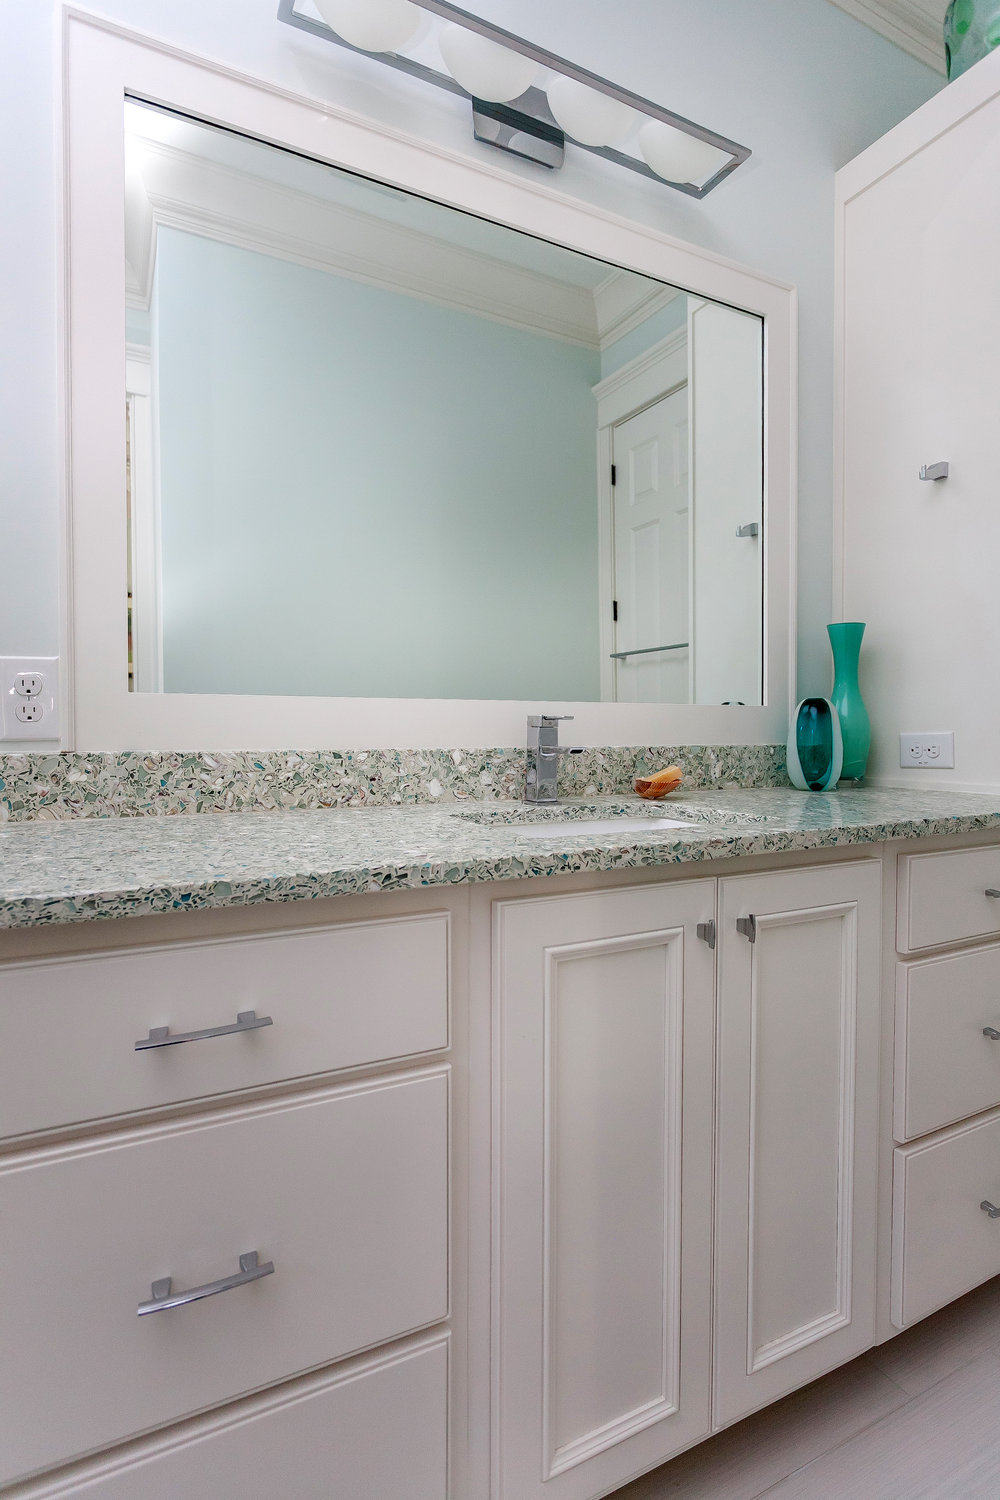 FisherRecycling_2184thAve_Bathroom_Spr15-8.jpg